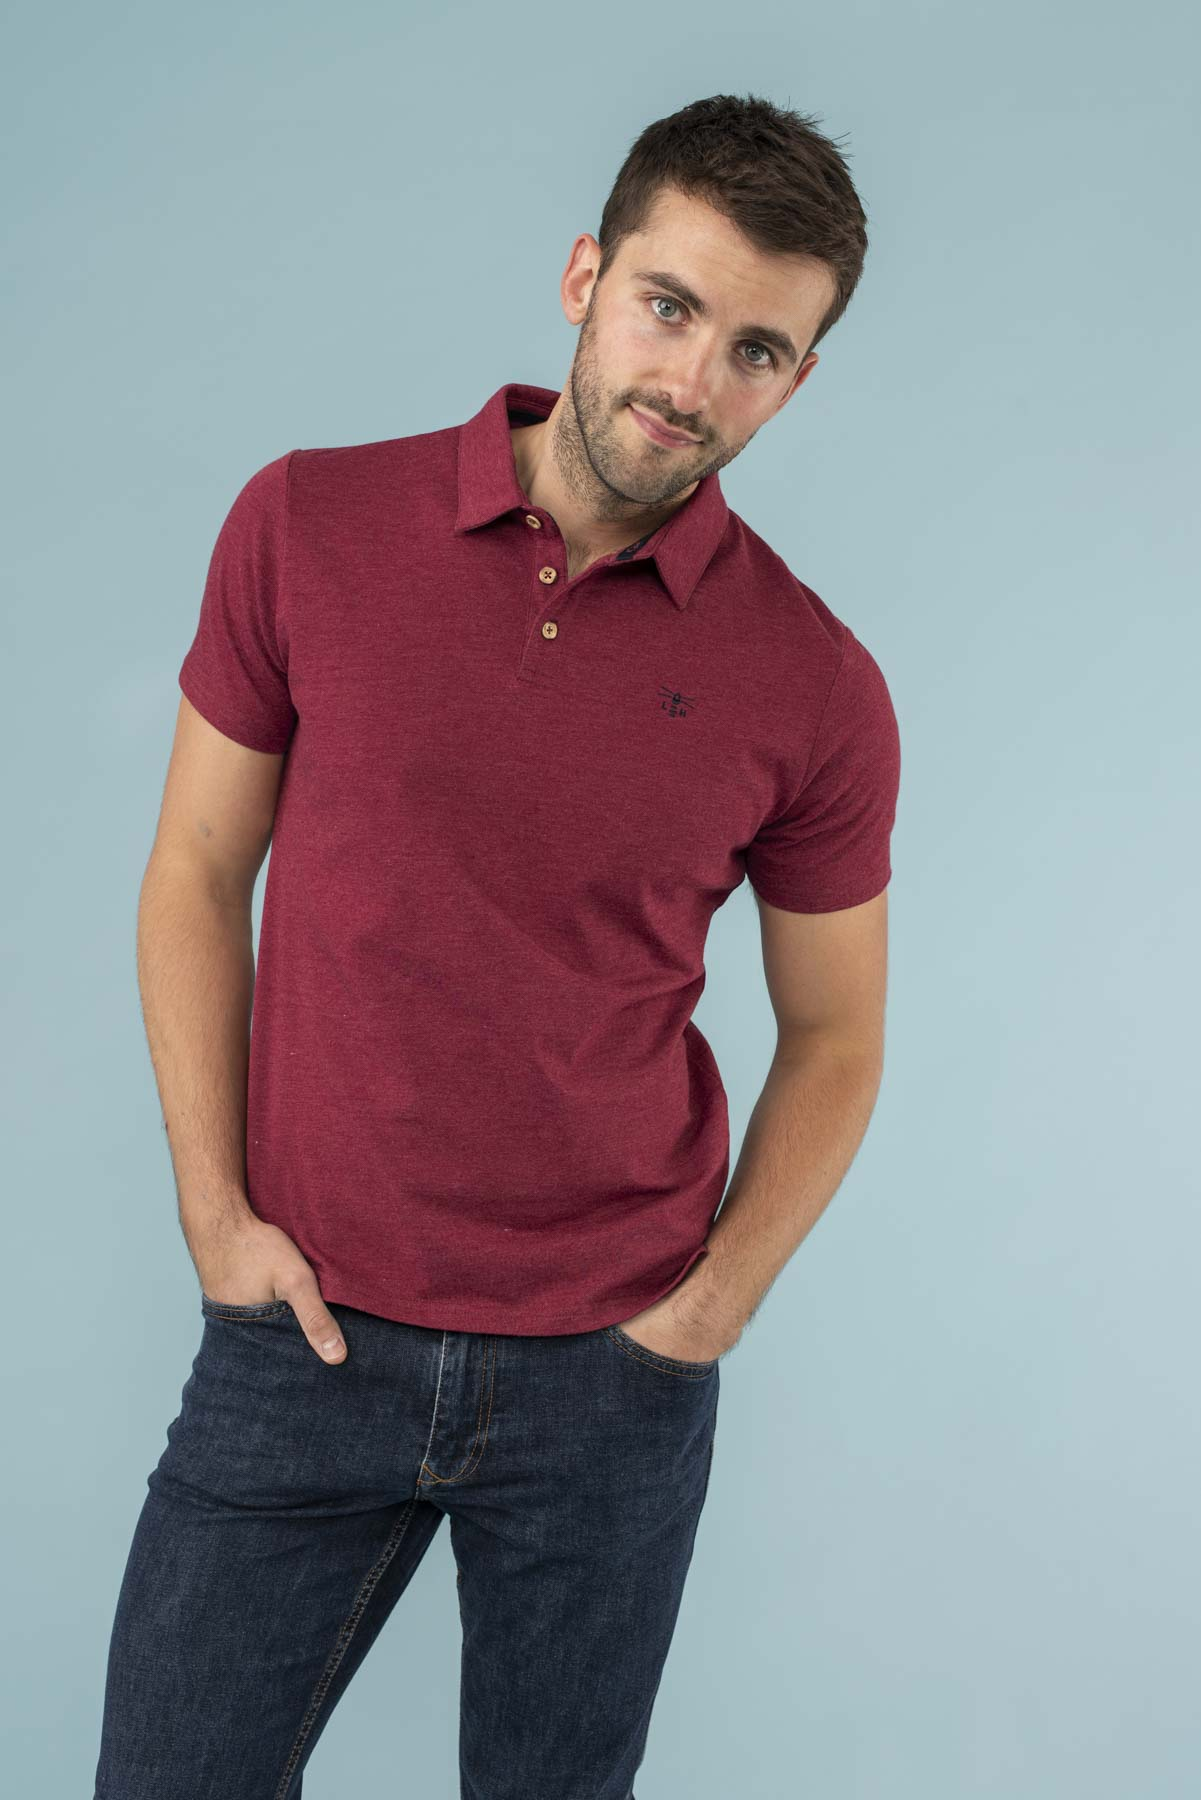 Lighthouse Pier Polo - Men's Classic Polo Shirt - Red